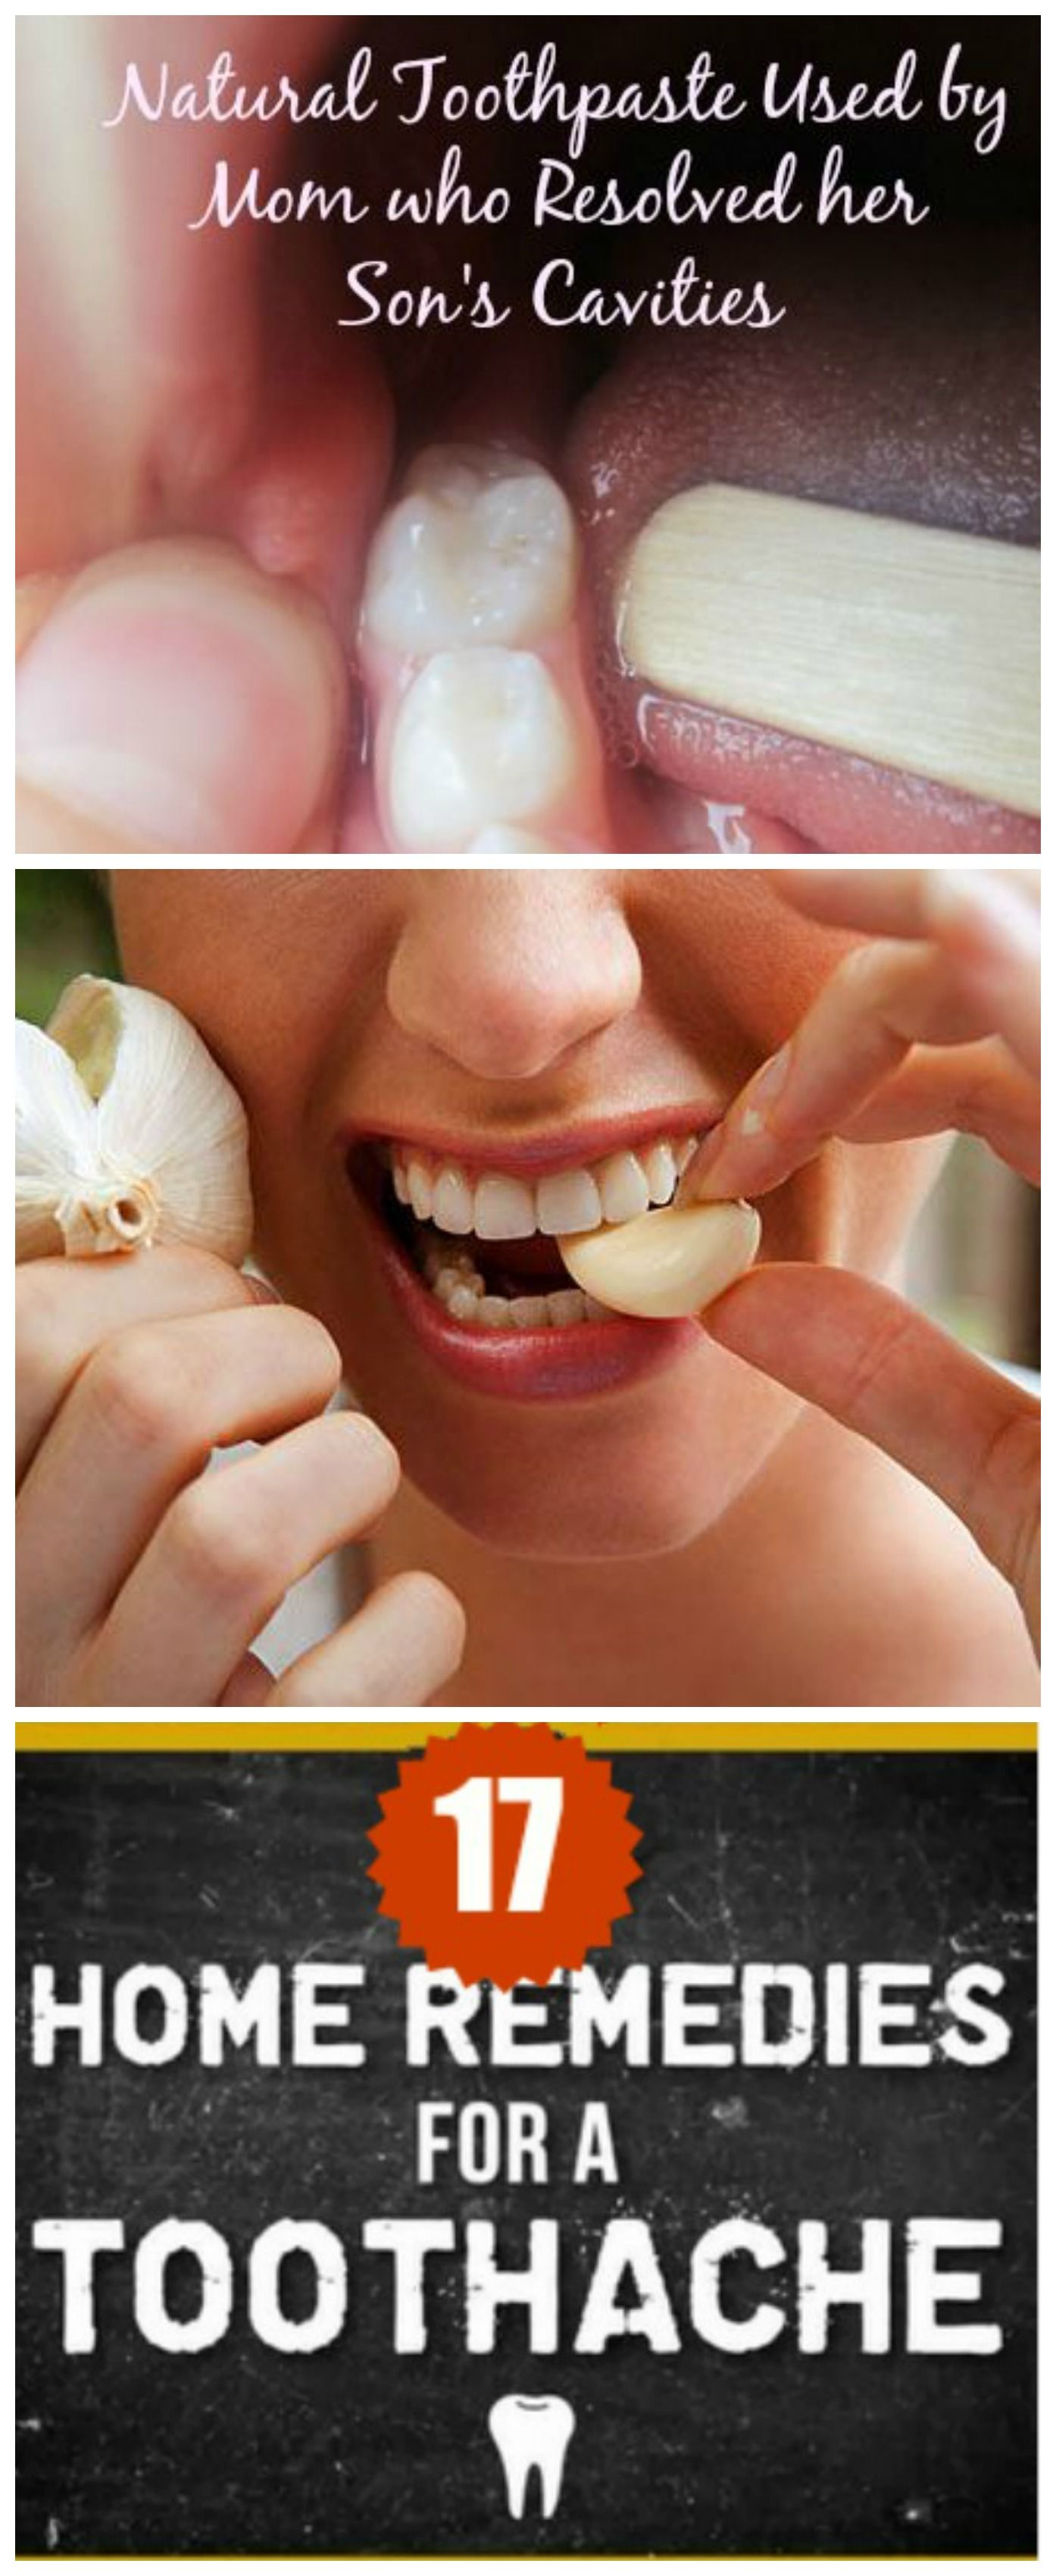 Home Remedies For A Toothache  Natural toothache relief That